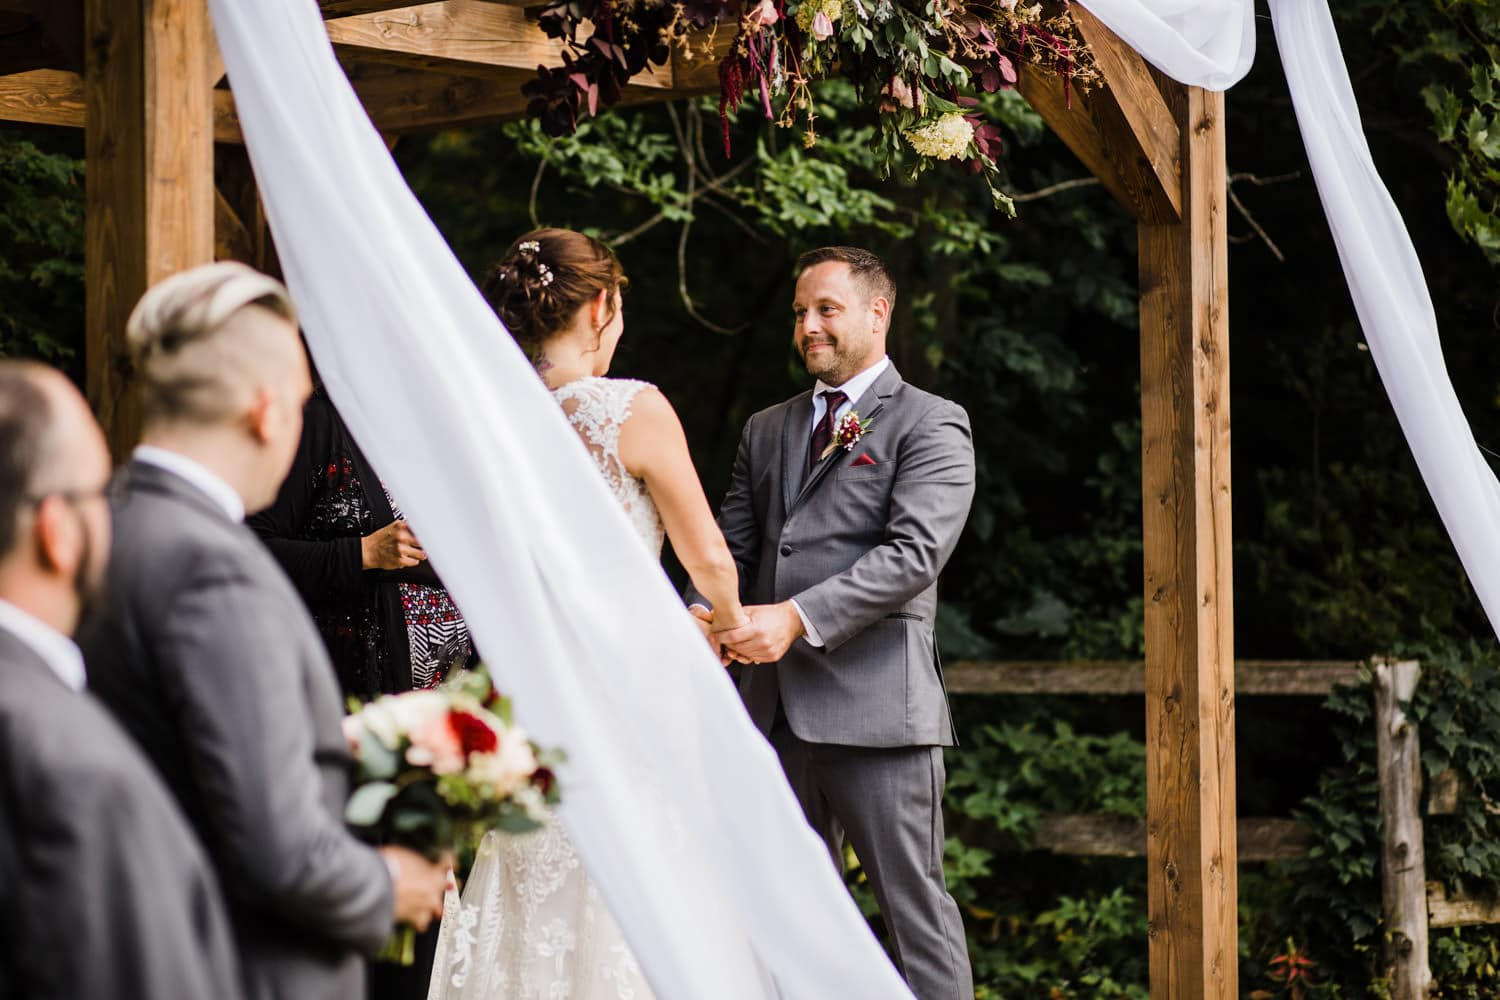 groom looks lovingly at bride during wedding ceremony